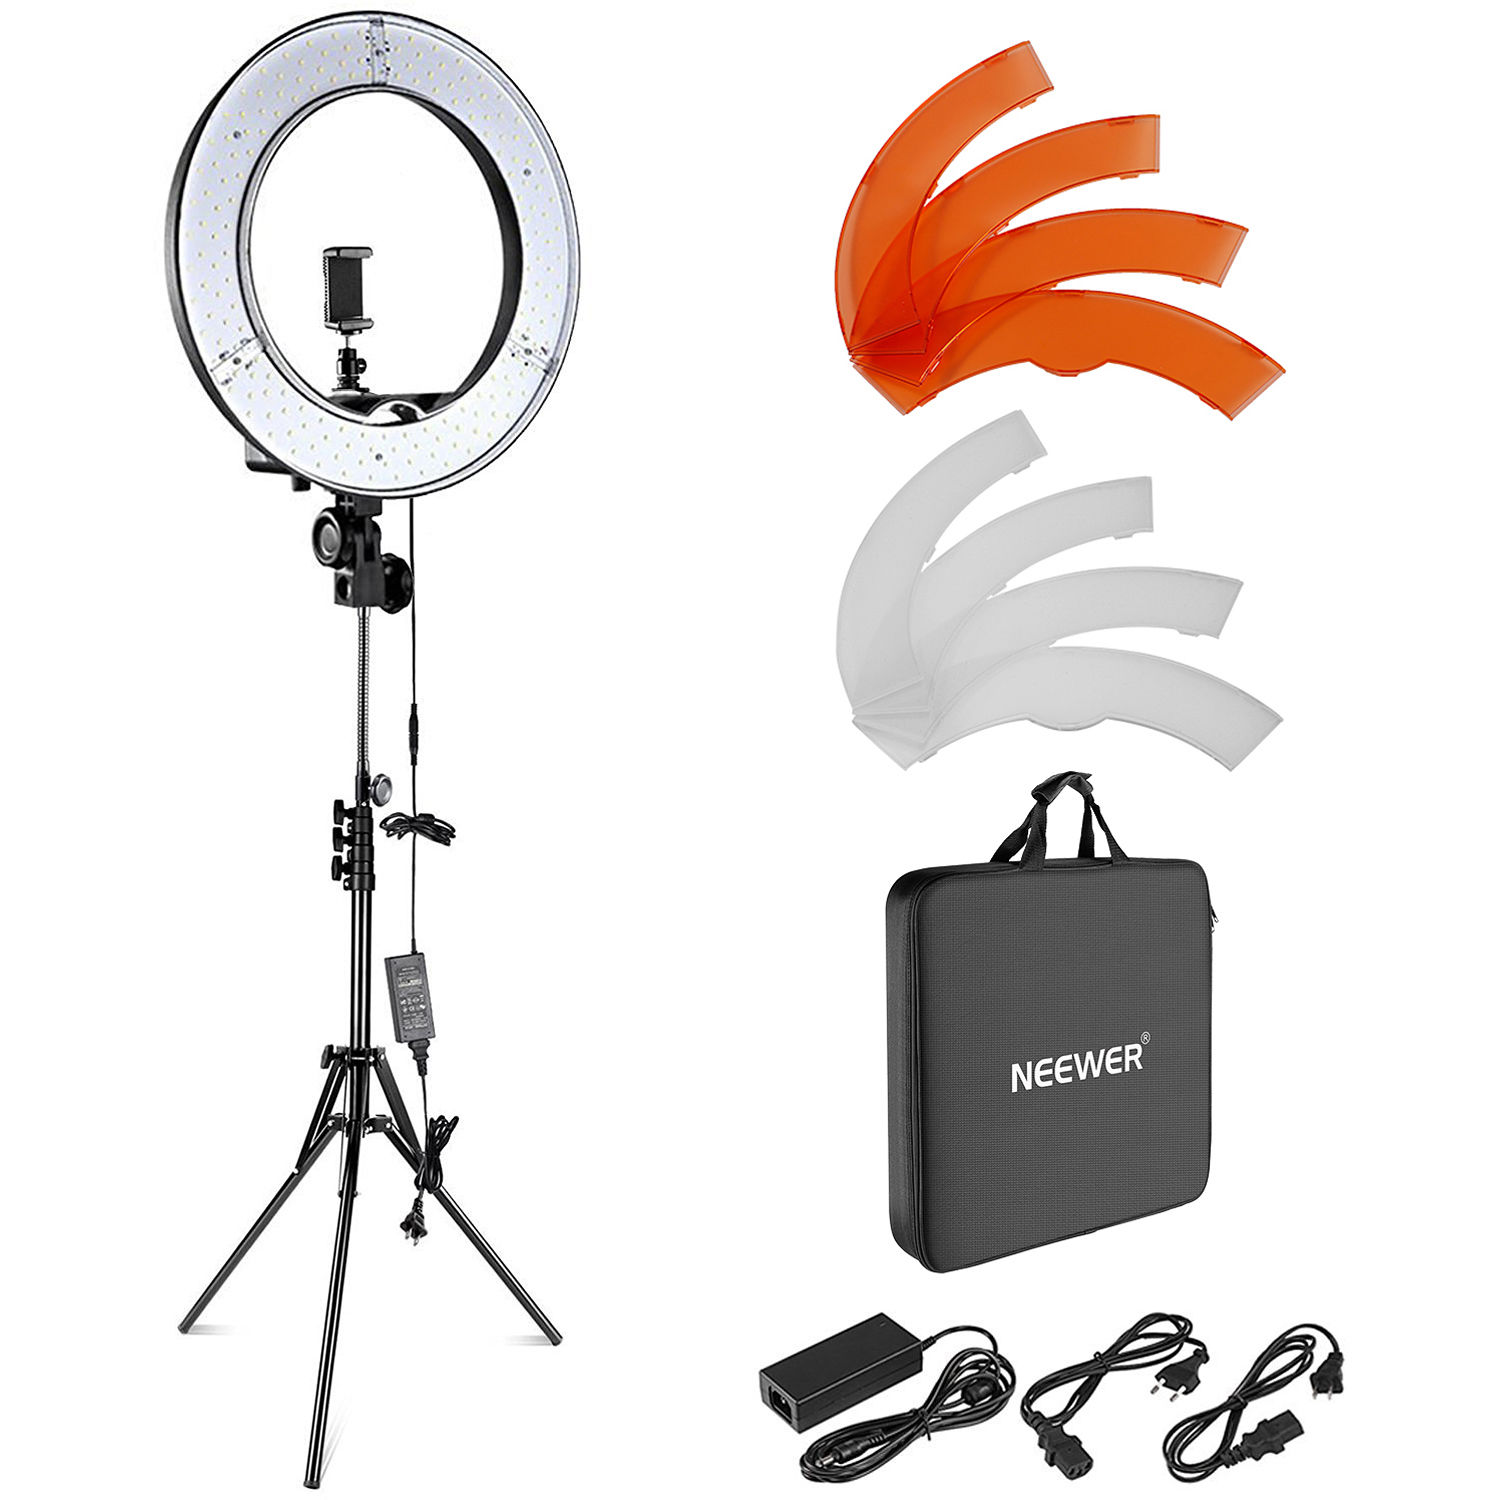 Makeup Ring And Lights: Neewer LED Ring Light With Stand And Accessories Kit 10088612